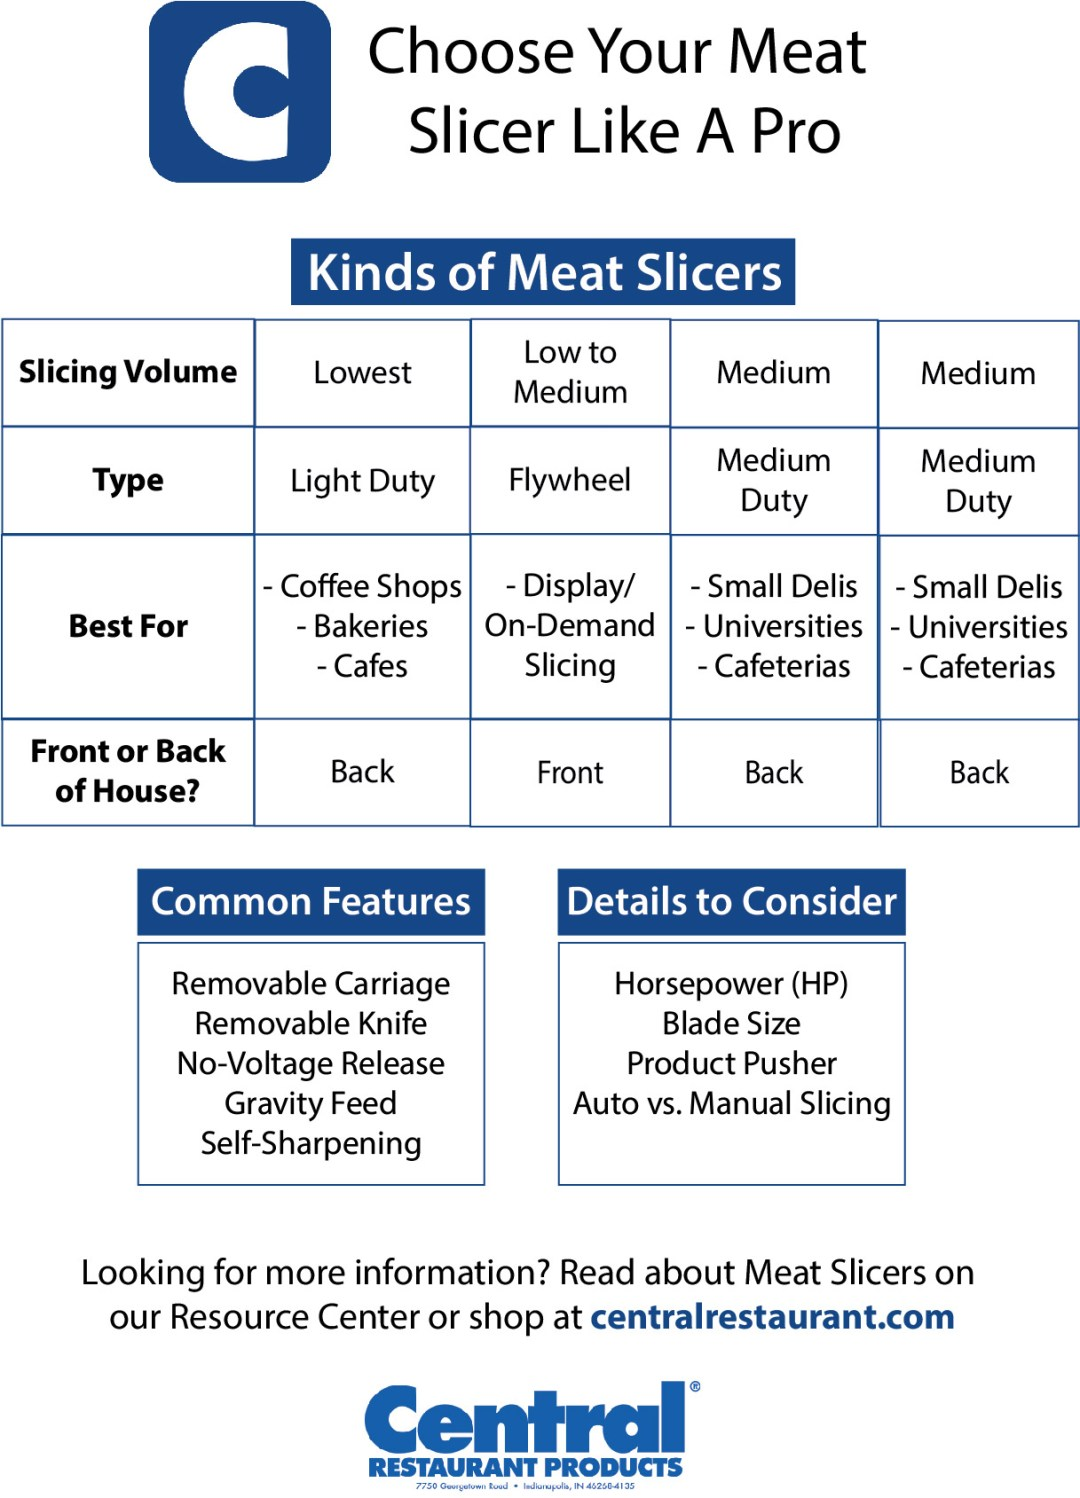 Central Restaurant Products Meat Slicer Guide